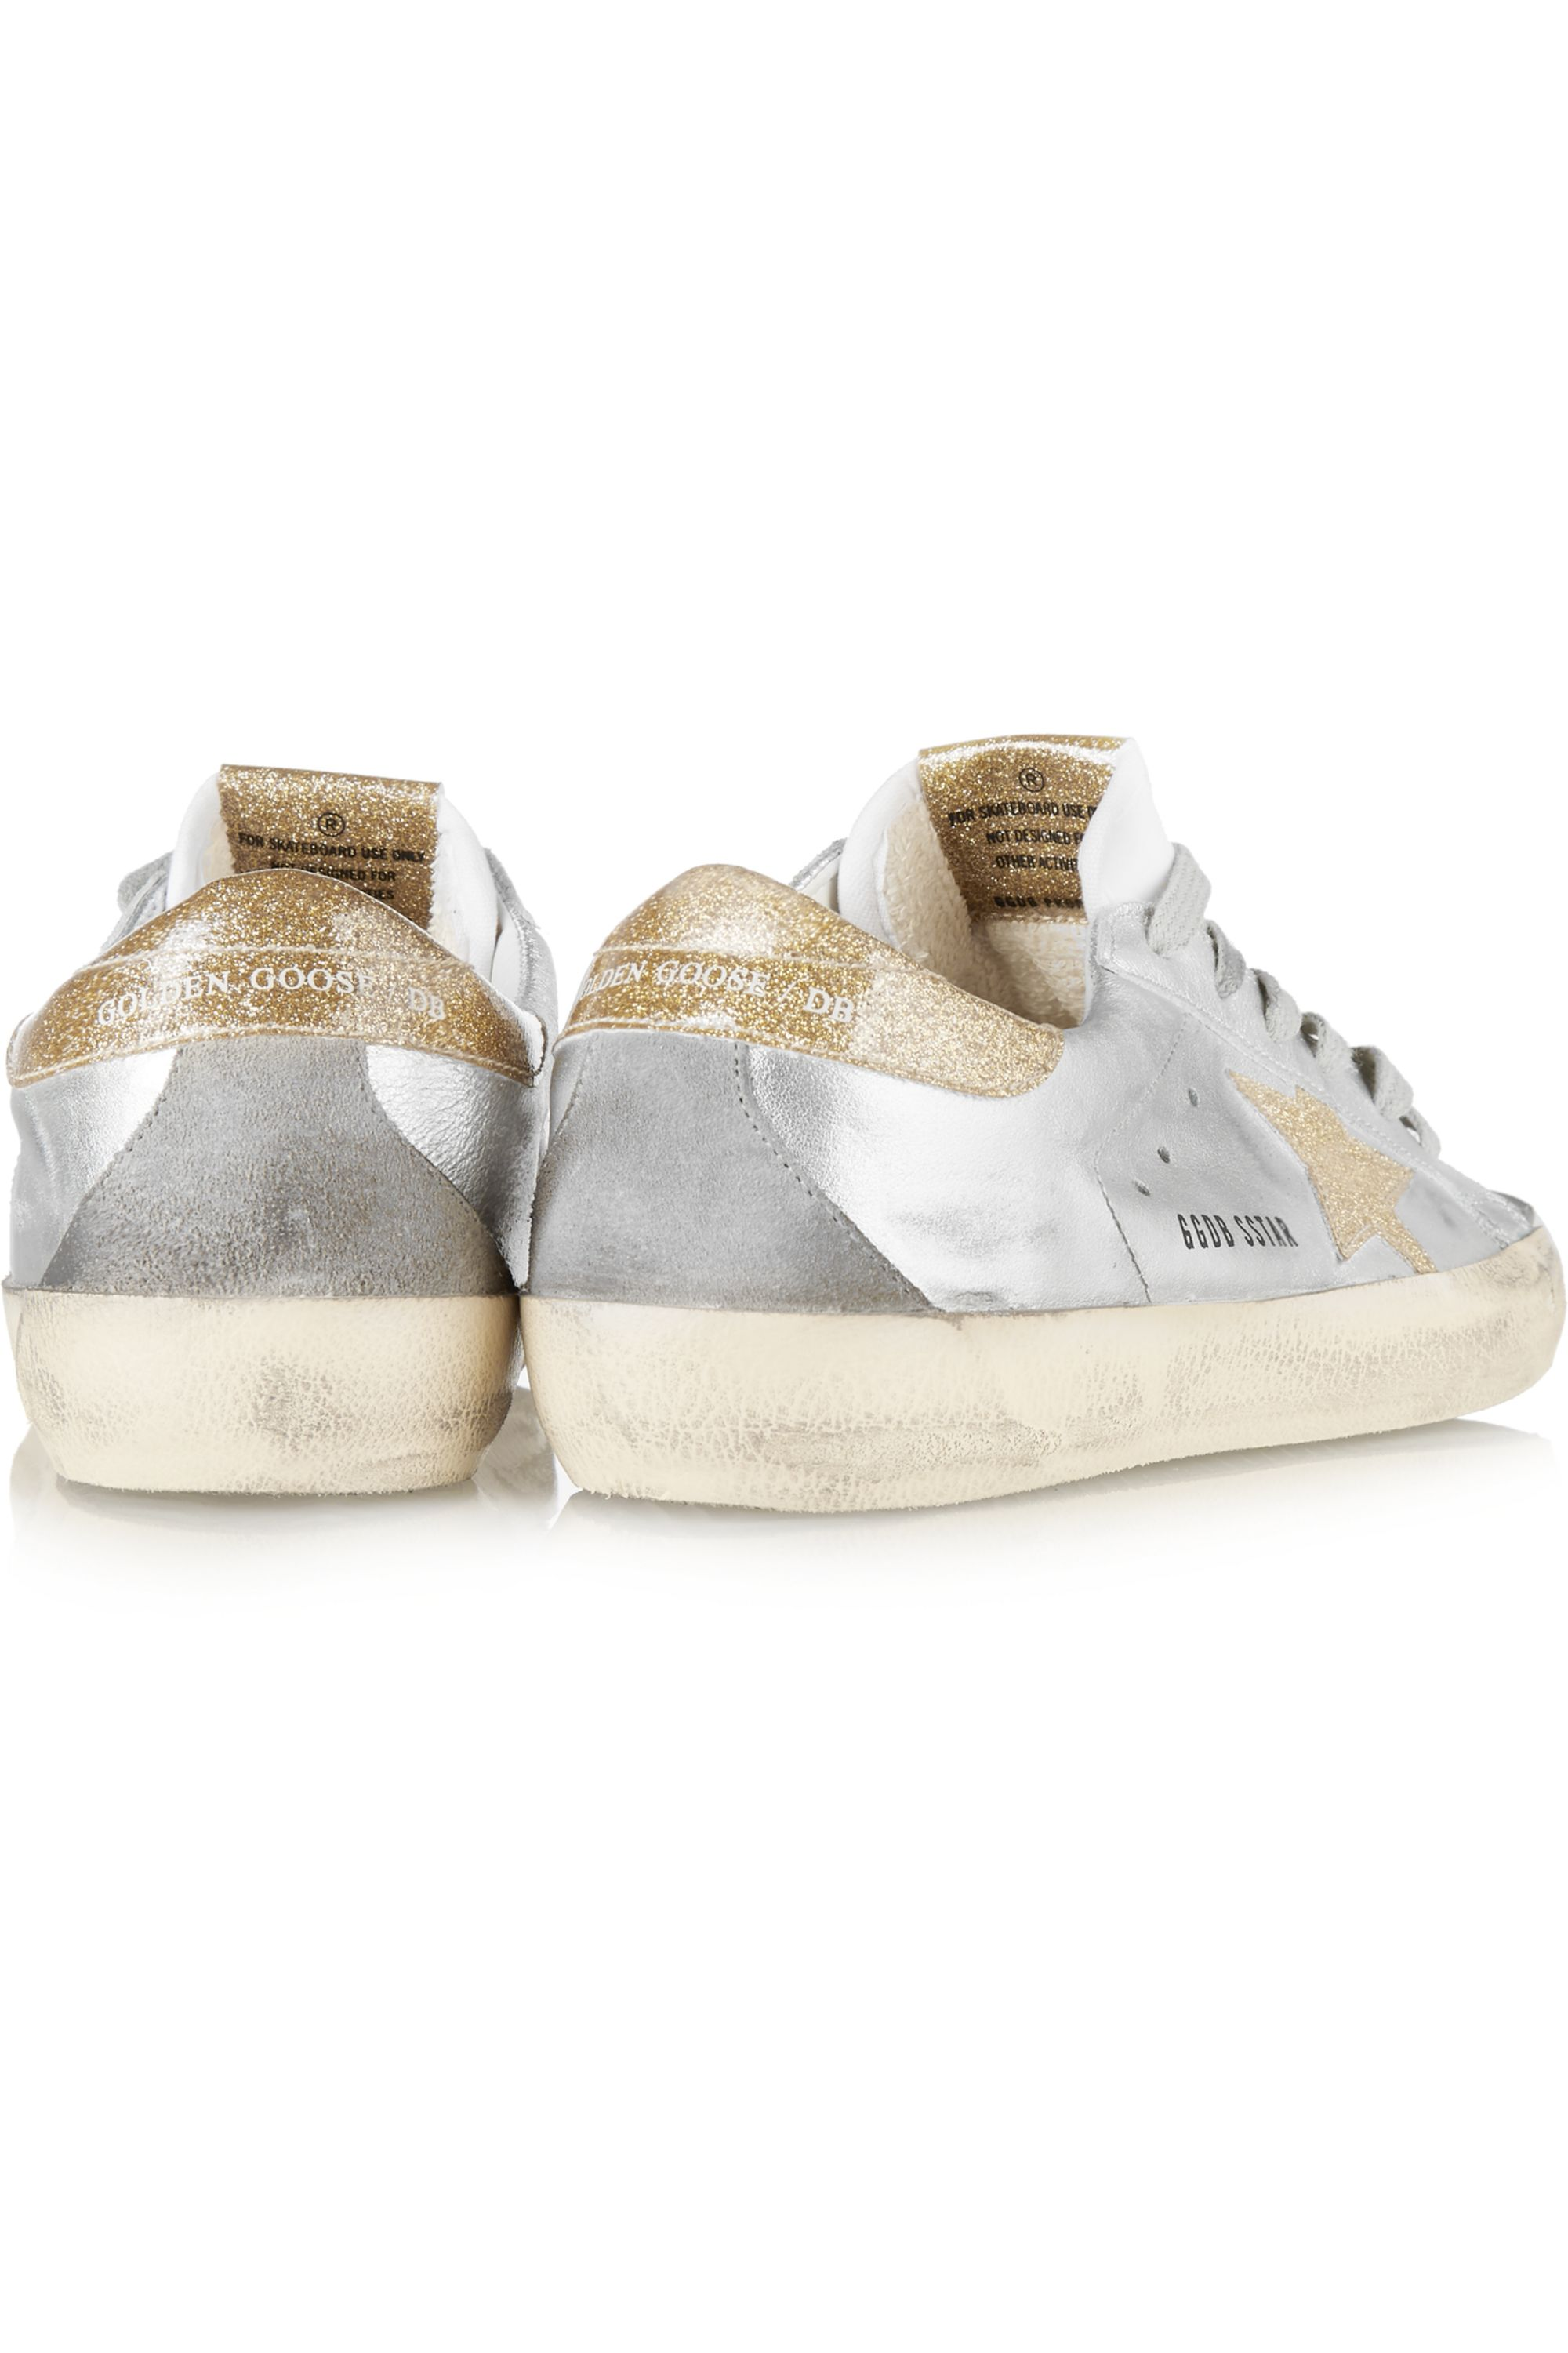 Golden Goose Super Star metallic distressed glittered leather sneakers